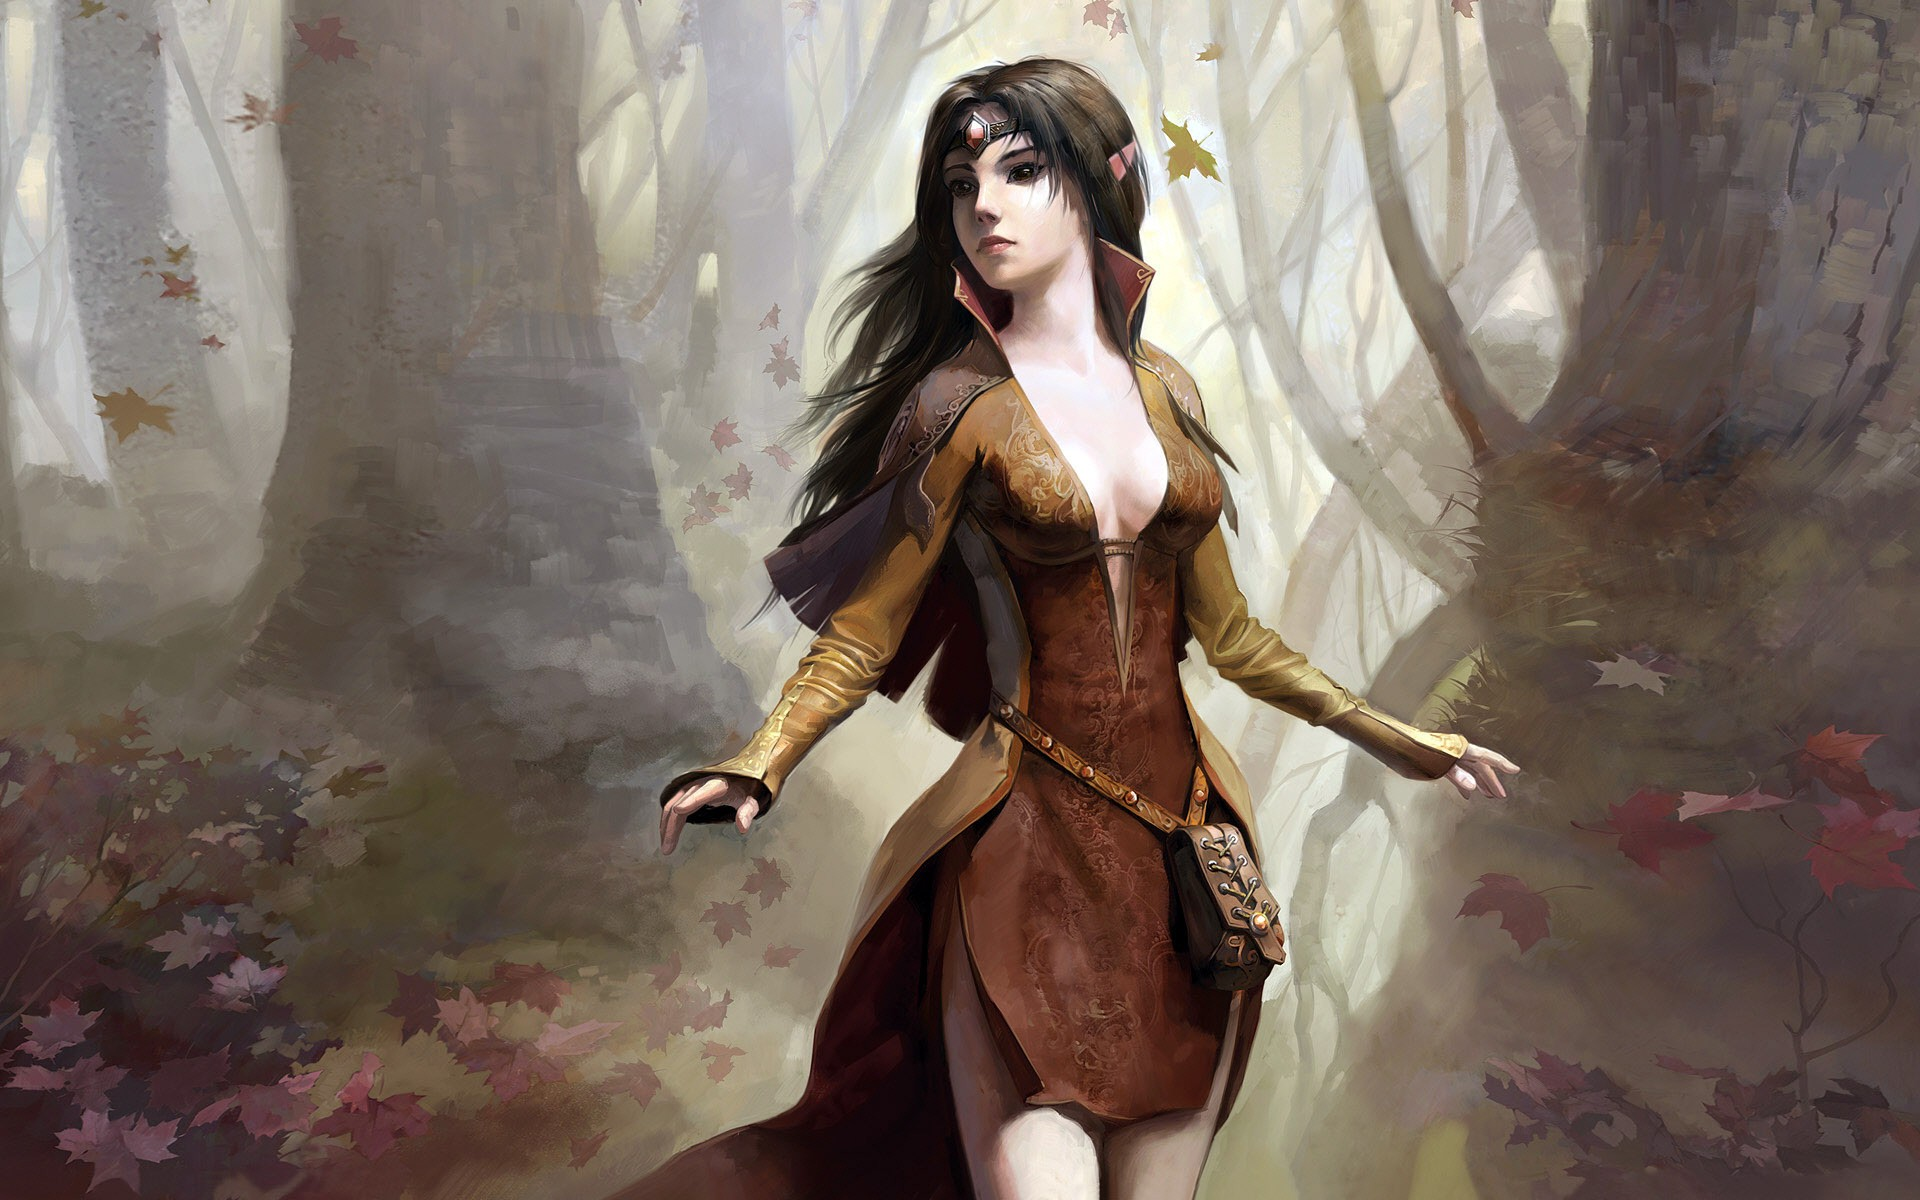 General 1920x1200 fantasy girl dark hair boobs trees